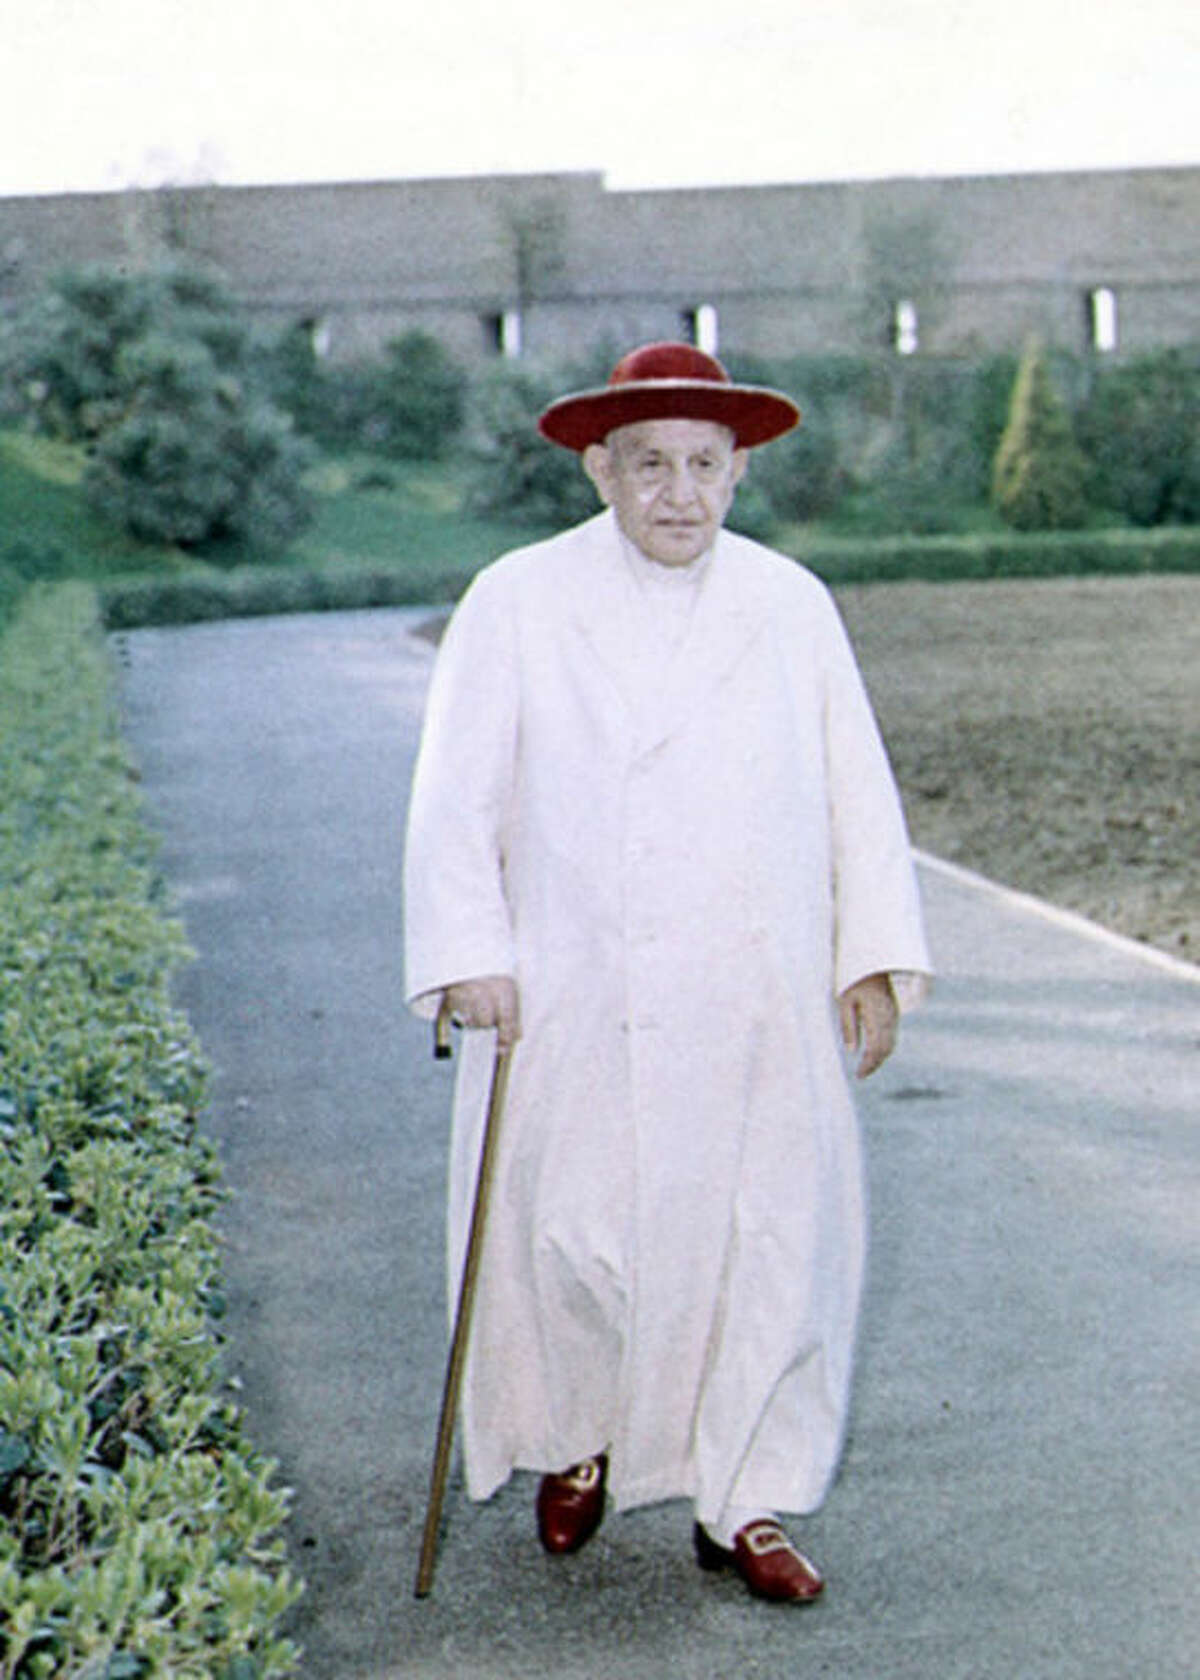 FILE - In this file photo taken on April 15 1963, Pope John XXIII walks in the gardens of the Vatican. Pope Francis has cleared John Paul II for sainthood, approving a miracle attributed to his intercession. Francis also decided Friday, July 5, 2013, to canonize another beloved pope, John XXIII, even though there has been no second miracle attributed to his intercession. The Vatican said Francis approved a decision by cardinals and bishops. The ceremonies are expected before the end of the year. (AP-Photo/HO Vatican)